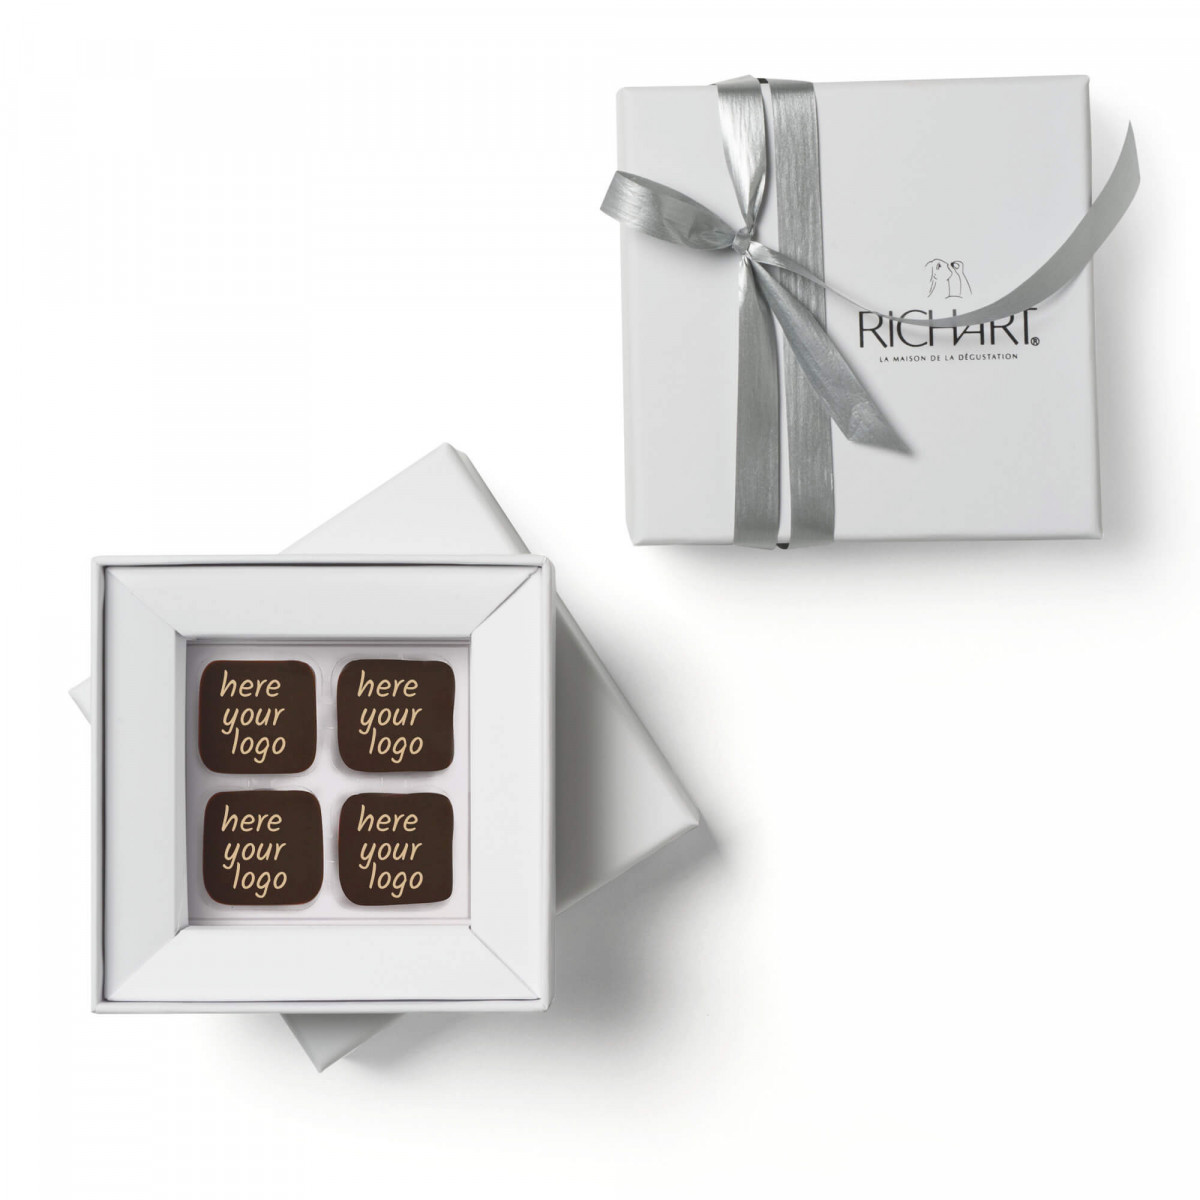 Balise Gift box - various personalization options